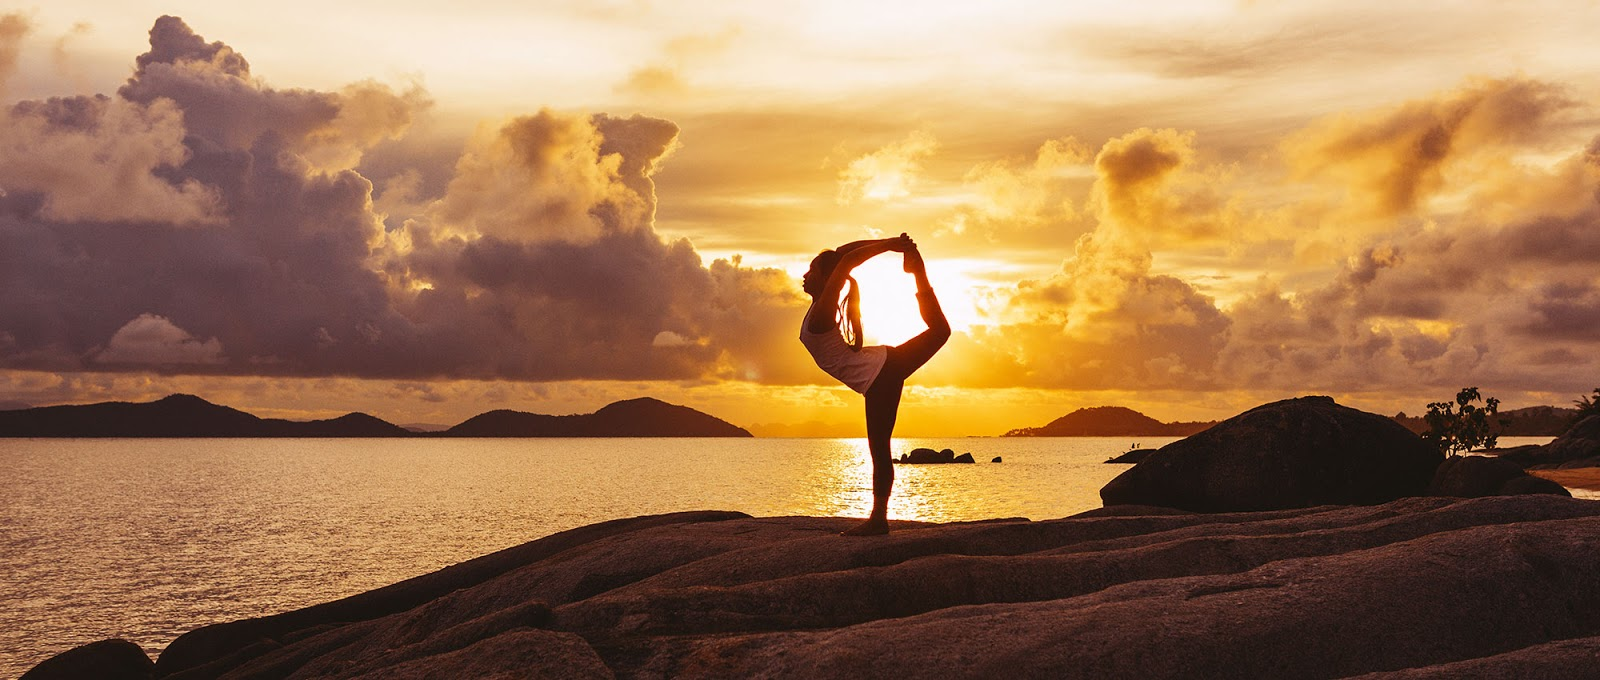 Best Yoga Retreats Holidays And Weekend Breaks 6 Sure Reasons To Visit A Yoga Meditation Retreat In Uk